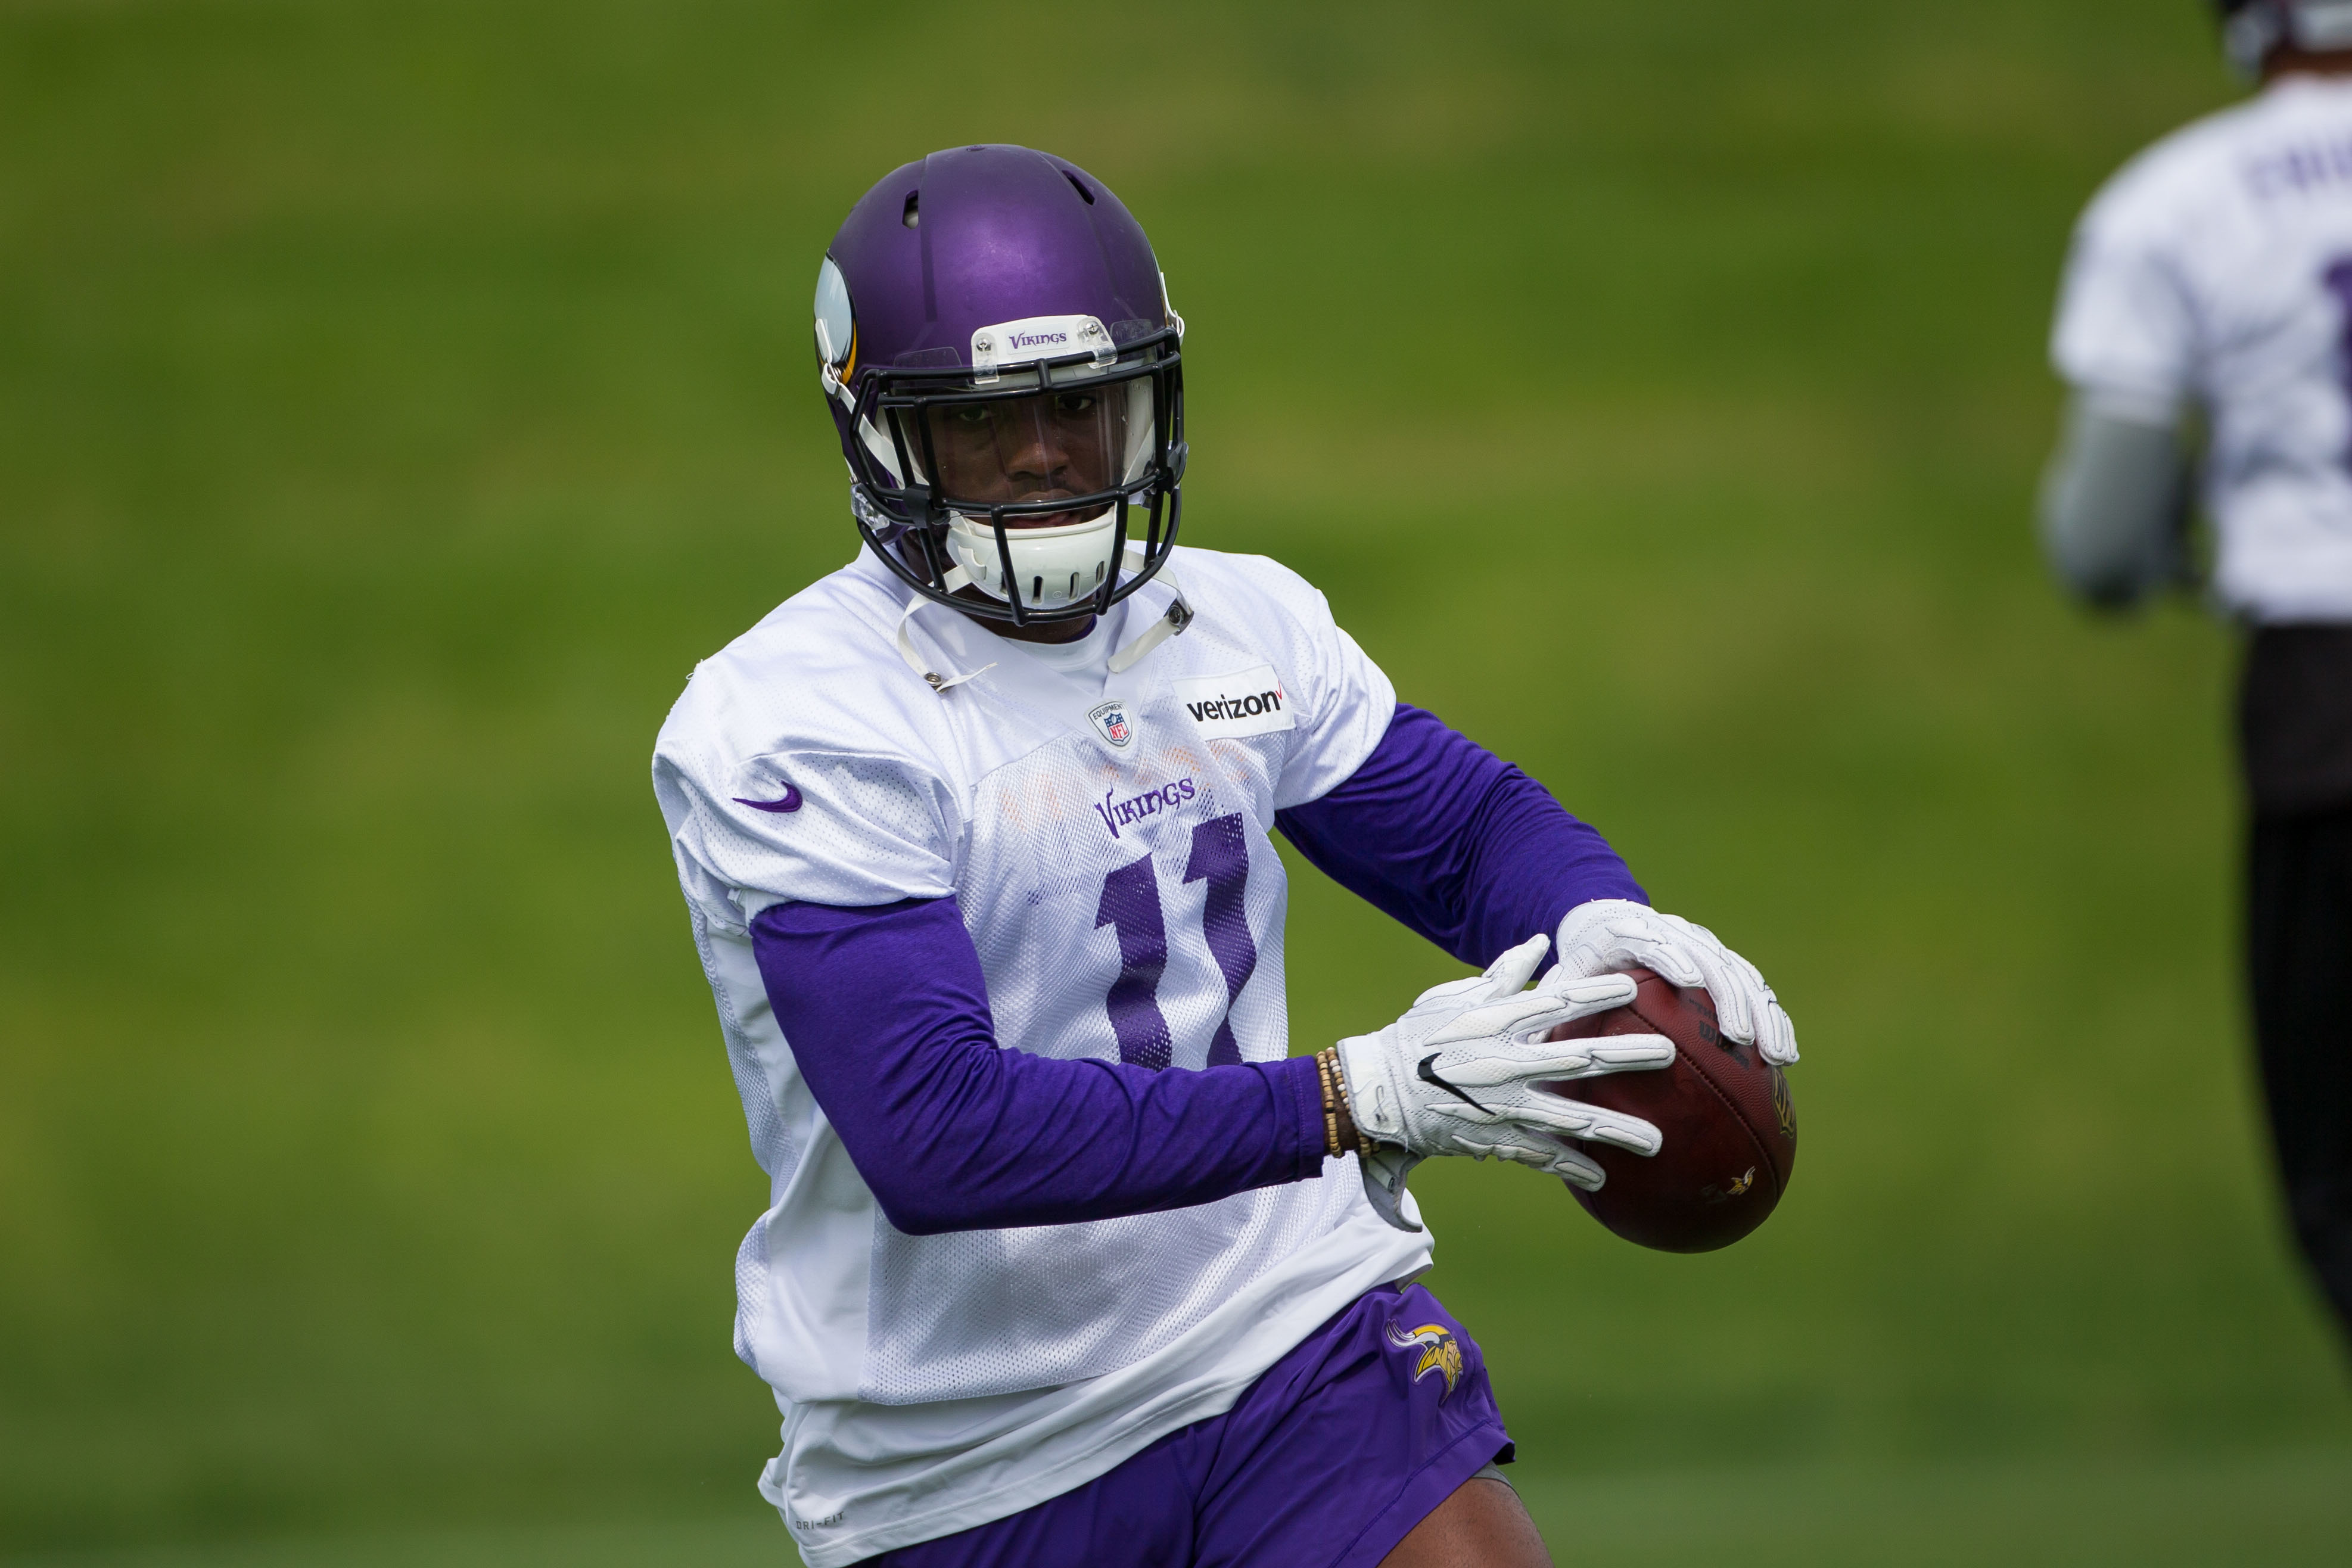 Teddy bridgewater injury update vikings expect qb to miss 2017 too report says sporting news - Teddy Bridgewater Injury Update Vikings Expect Qb To Miss 2017 Too Report Says Sporting News 19